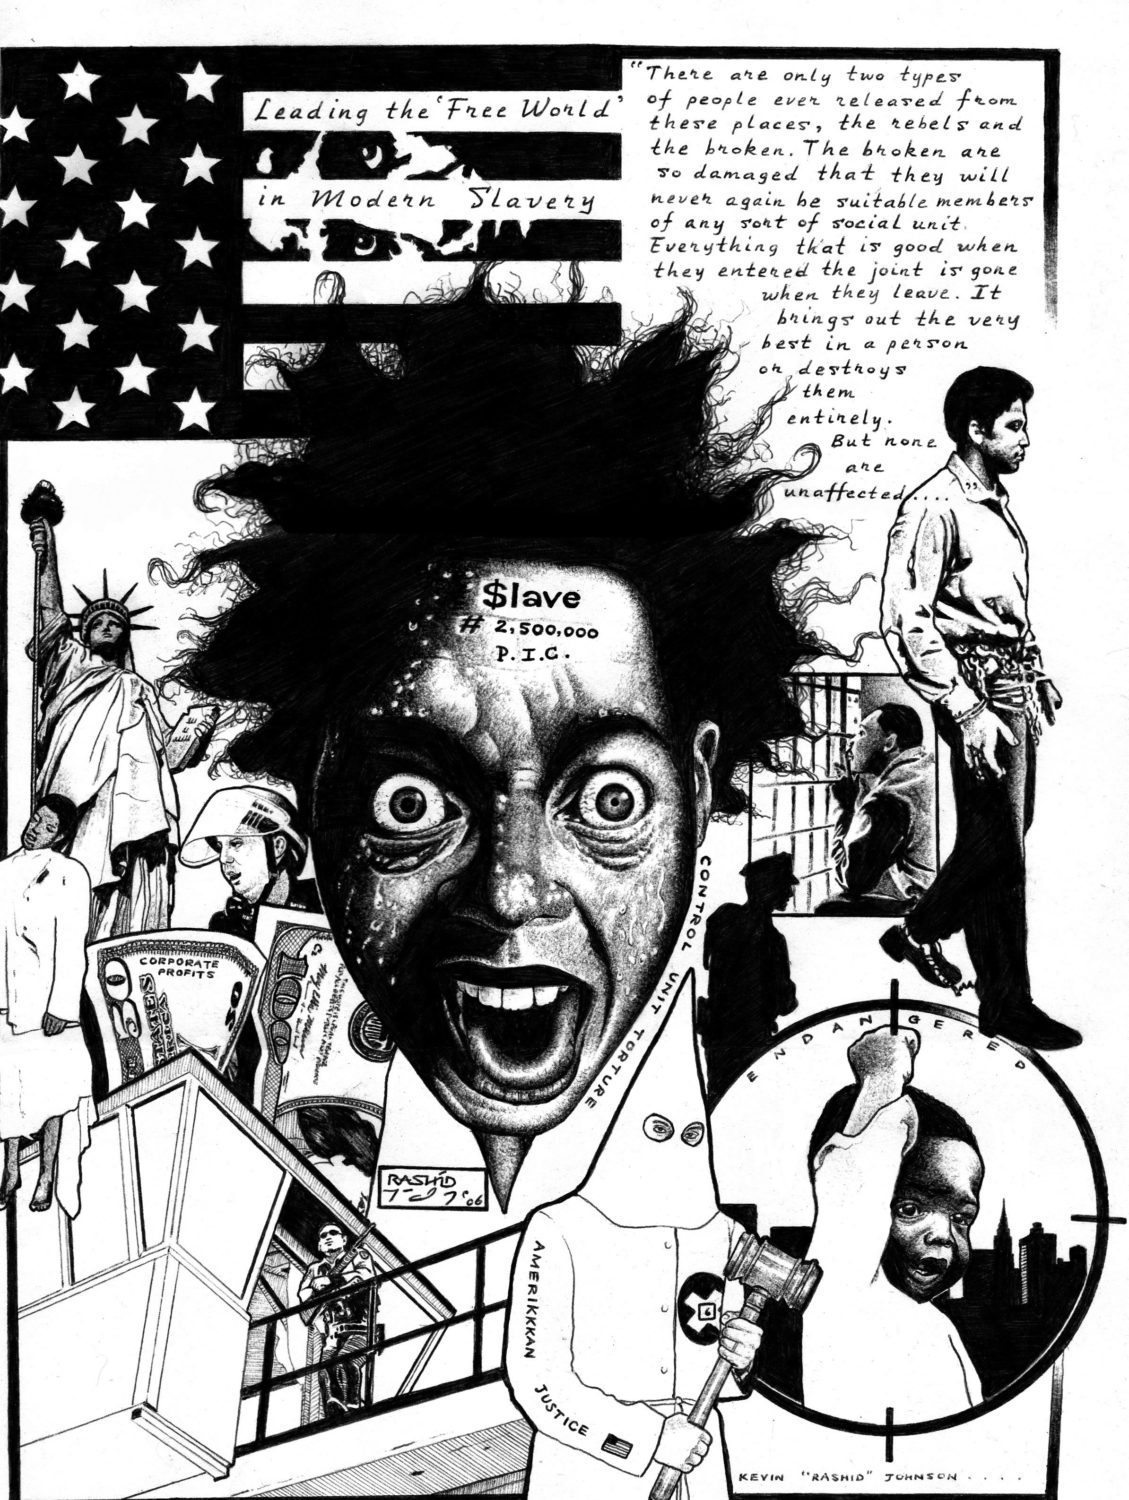 Control-Unit-Torture-art-by-Kevin-Rashid-Johnson, Military torture in Indiana prisons, Behind Enemy Lines